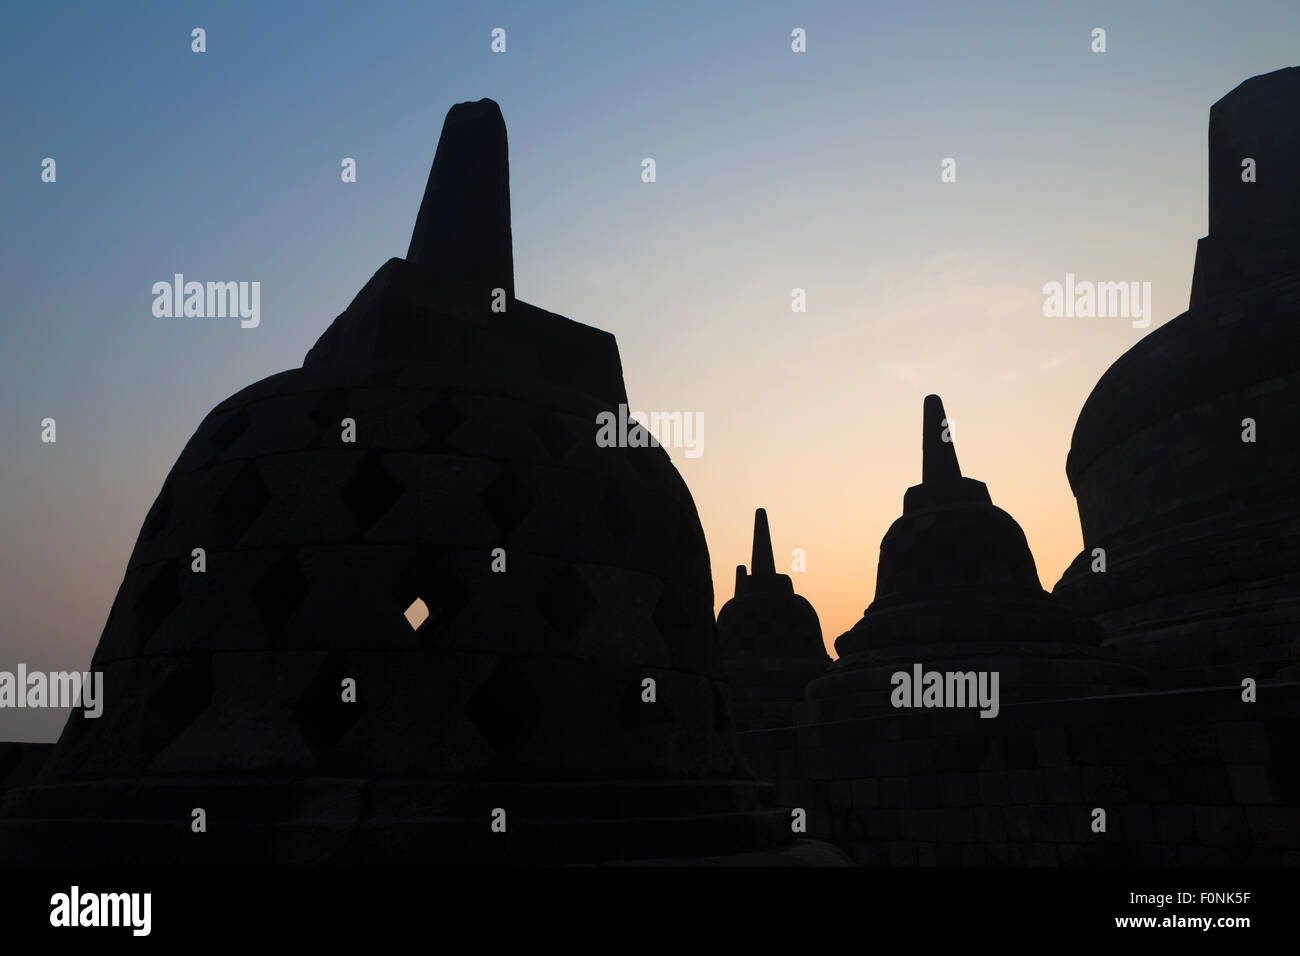 Silhouette's of Stupa's at sunrise at the Unesco world heritage site the Borobudur temple on Java, Indonesia, - Stock Image